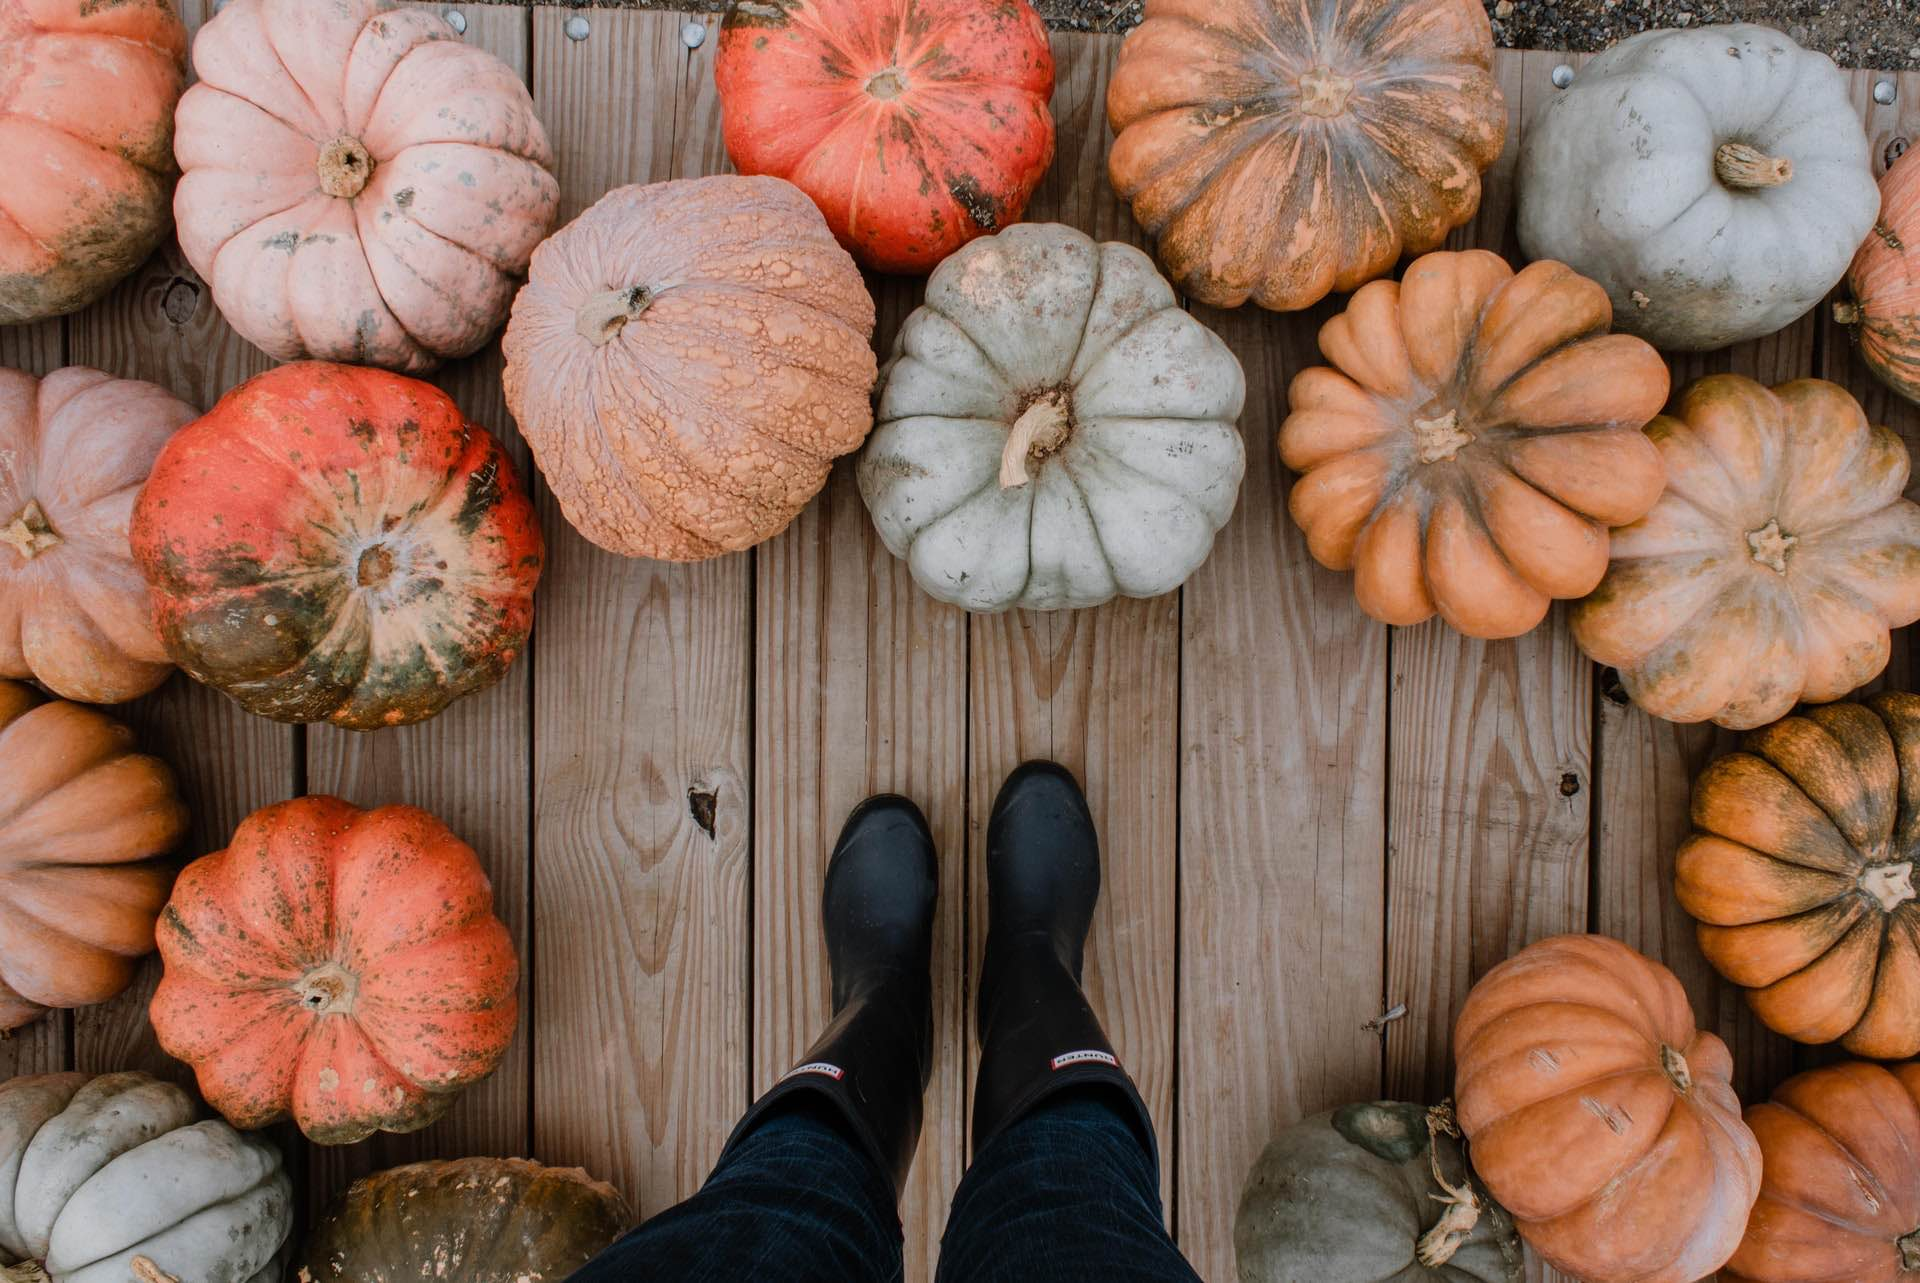 The Best Ways to Decorate a Pumpkin, No Carving Knife Necessary